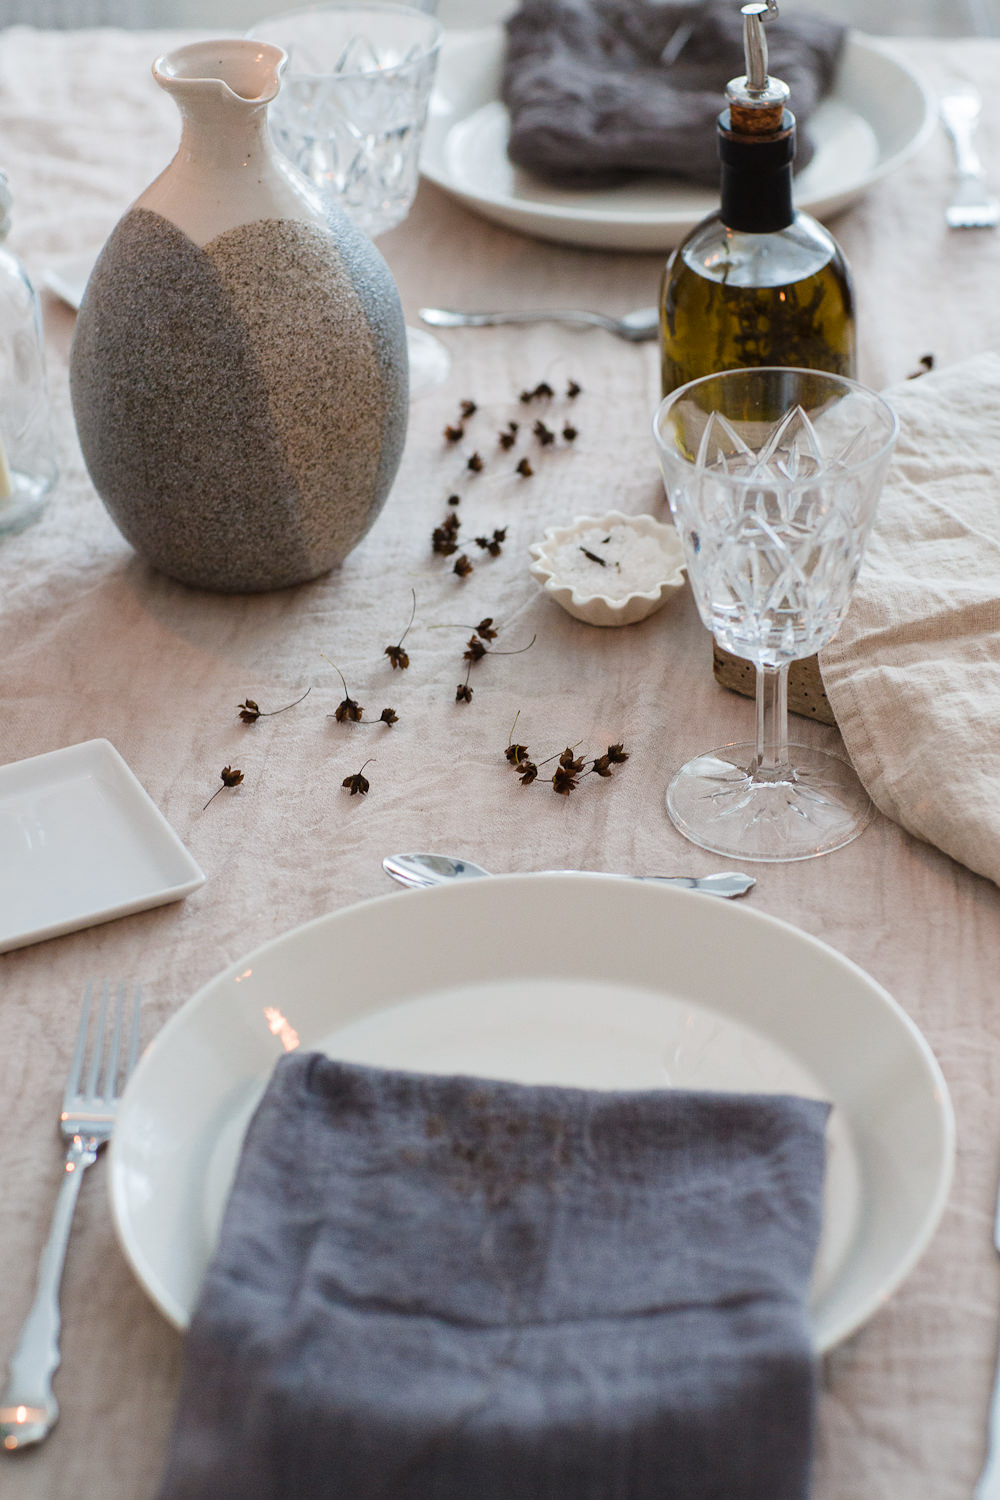 Scandinavian tablesetting